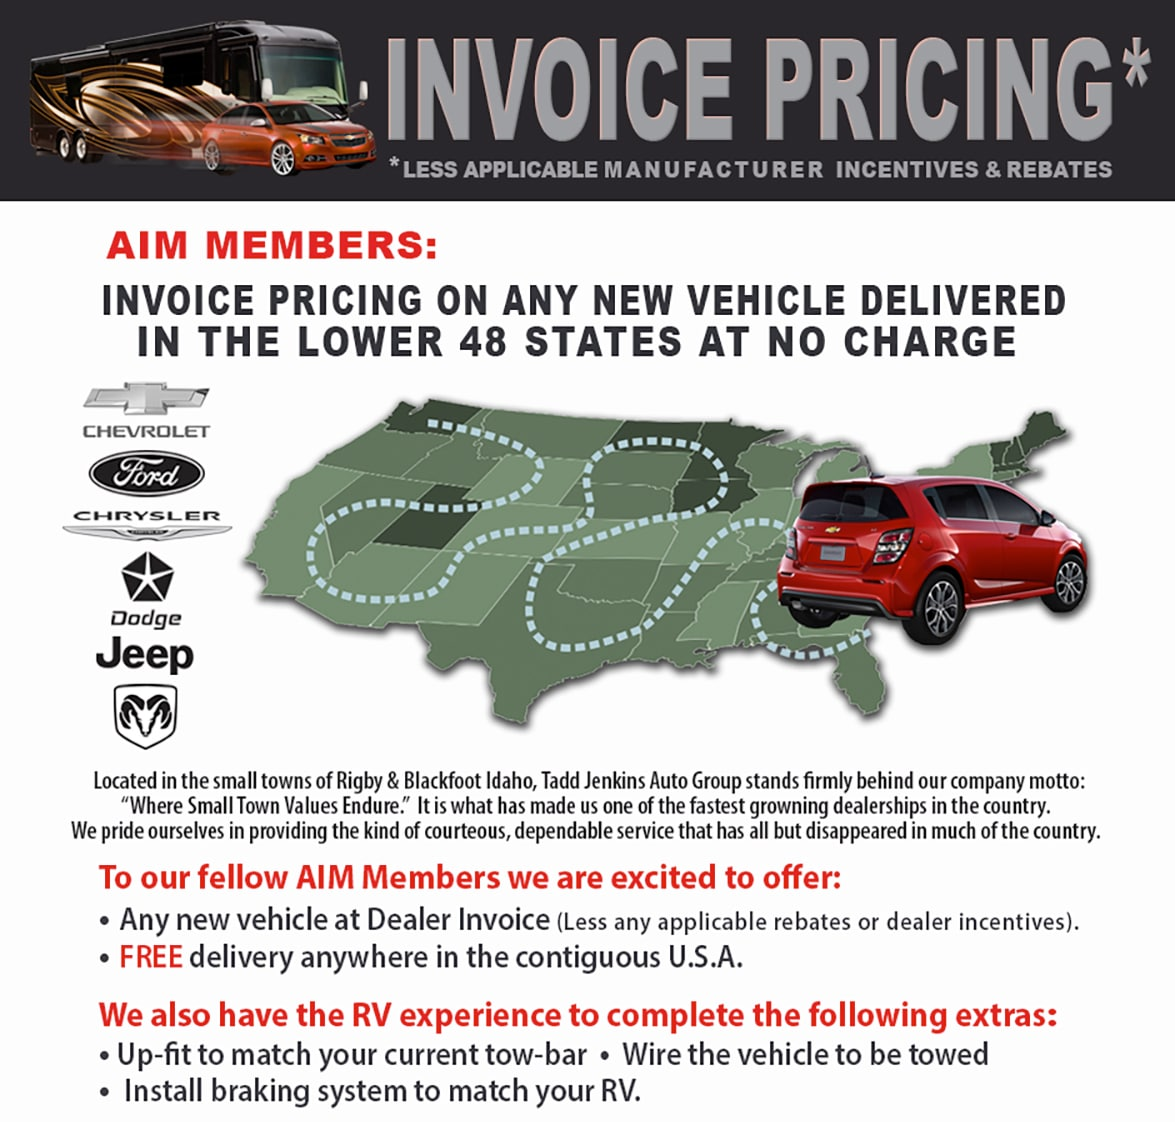 Tadd Jenkins Auto Group New Dodge Jeep Chevrolet Ford Chrysler - Dodge ram dealer invoice price